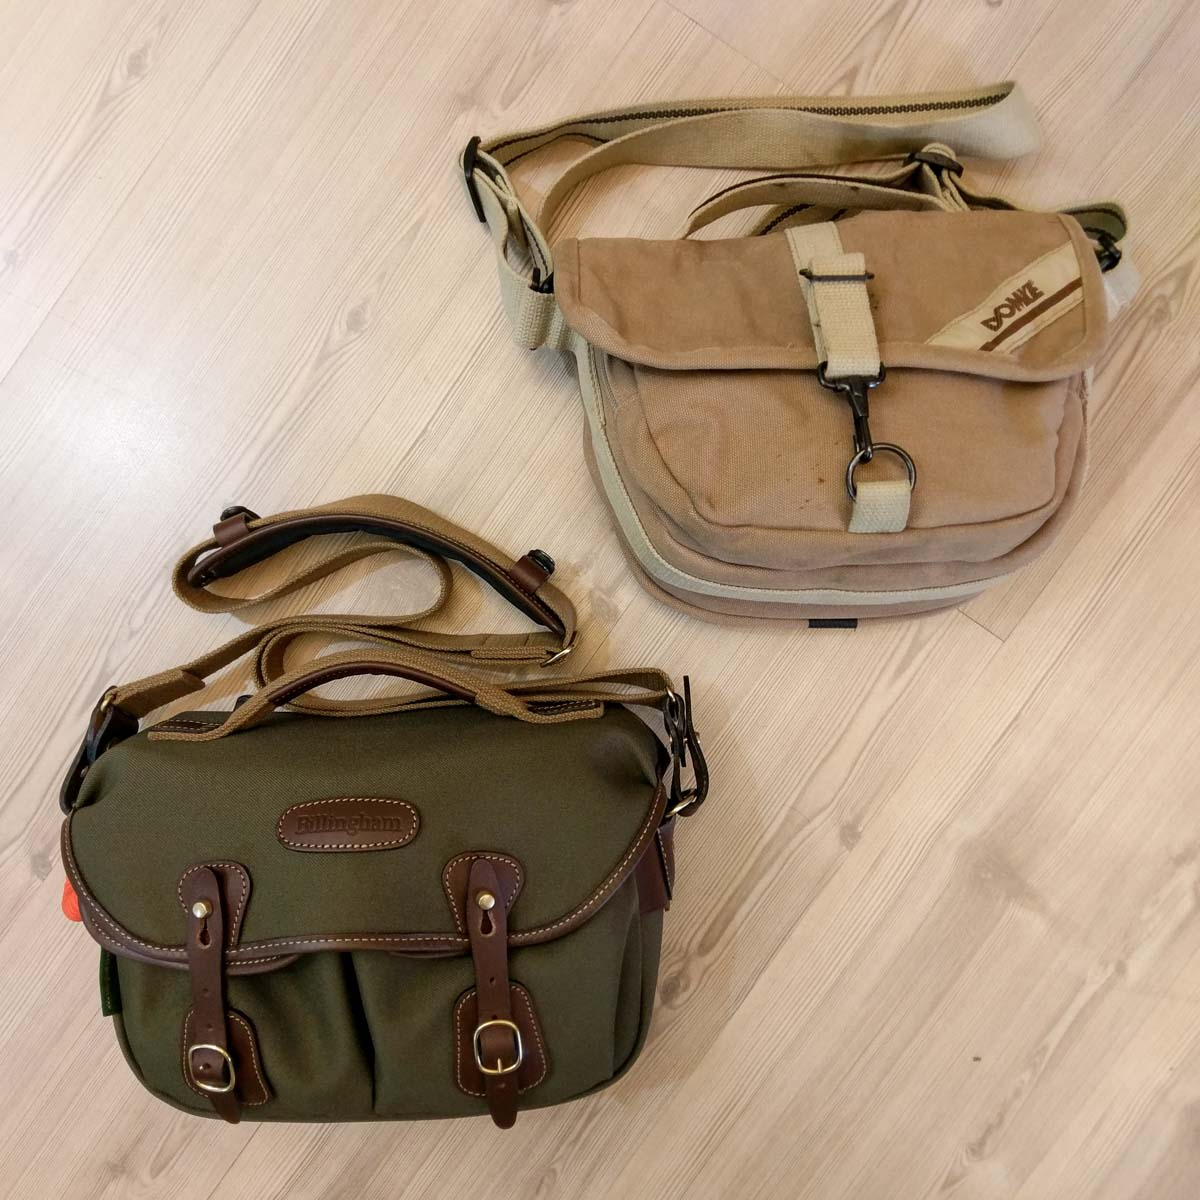 7becf7f040076 Bag review: the new Billingham Hadley Small Pro part one | EMULSIVE